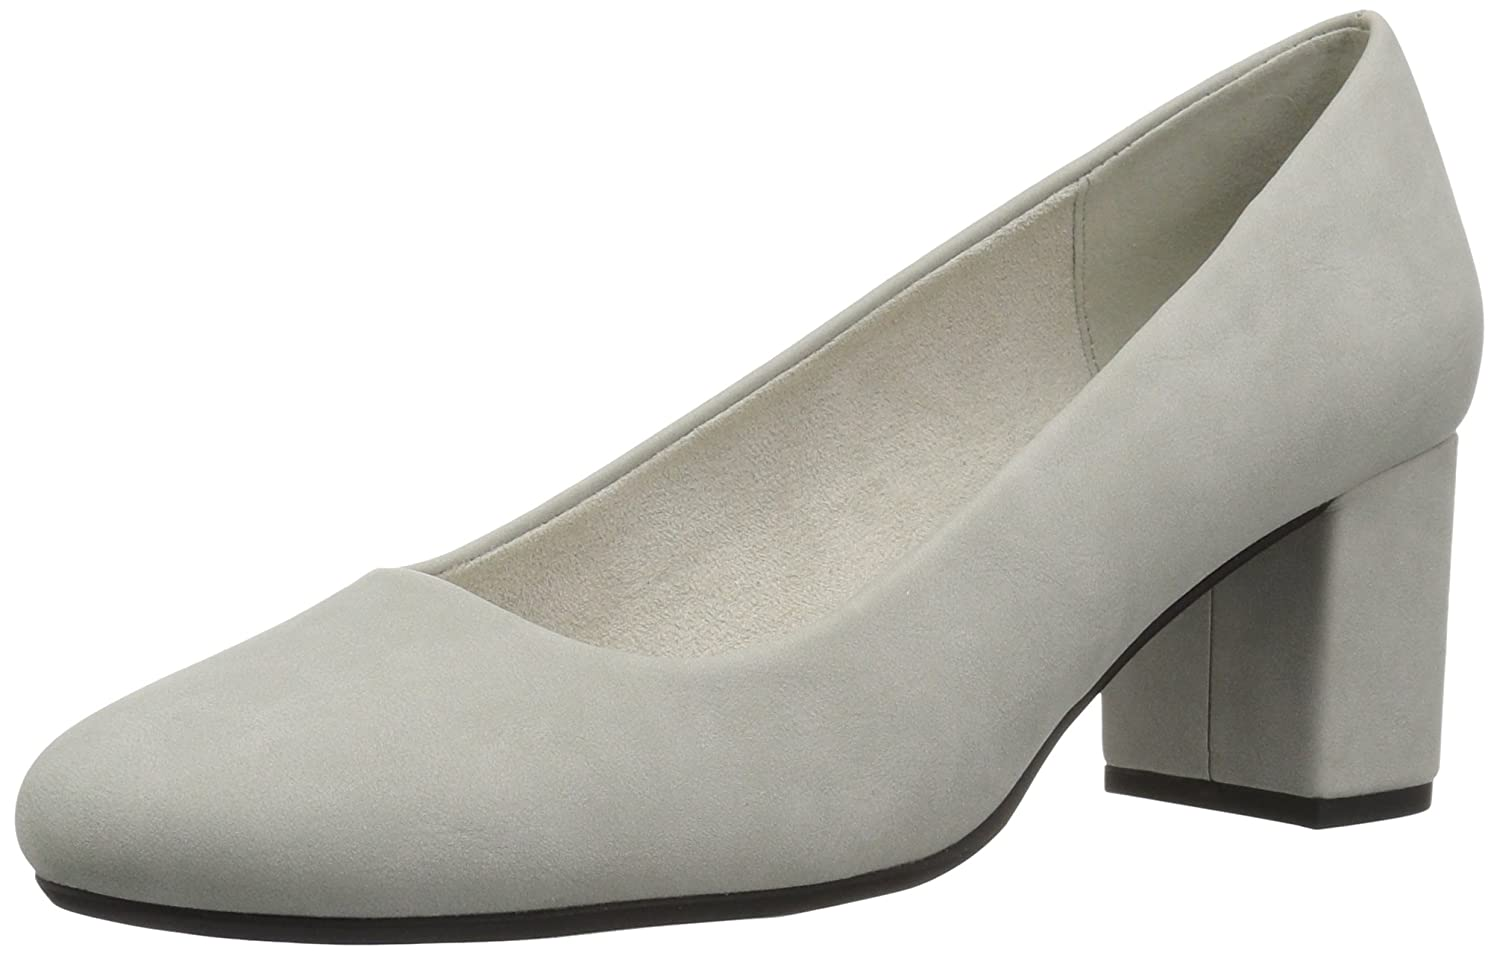 Easy Street Women's Proper Pump B077ZGYD1P 6.5 B(M) US|Light Grey